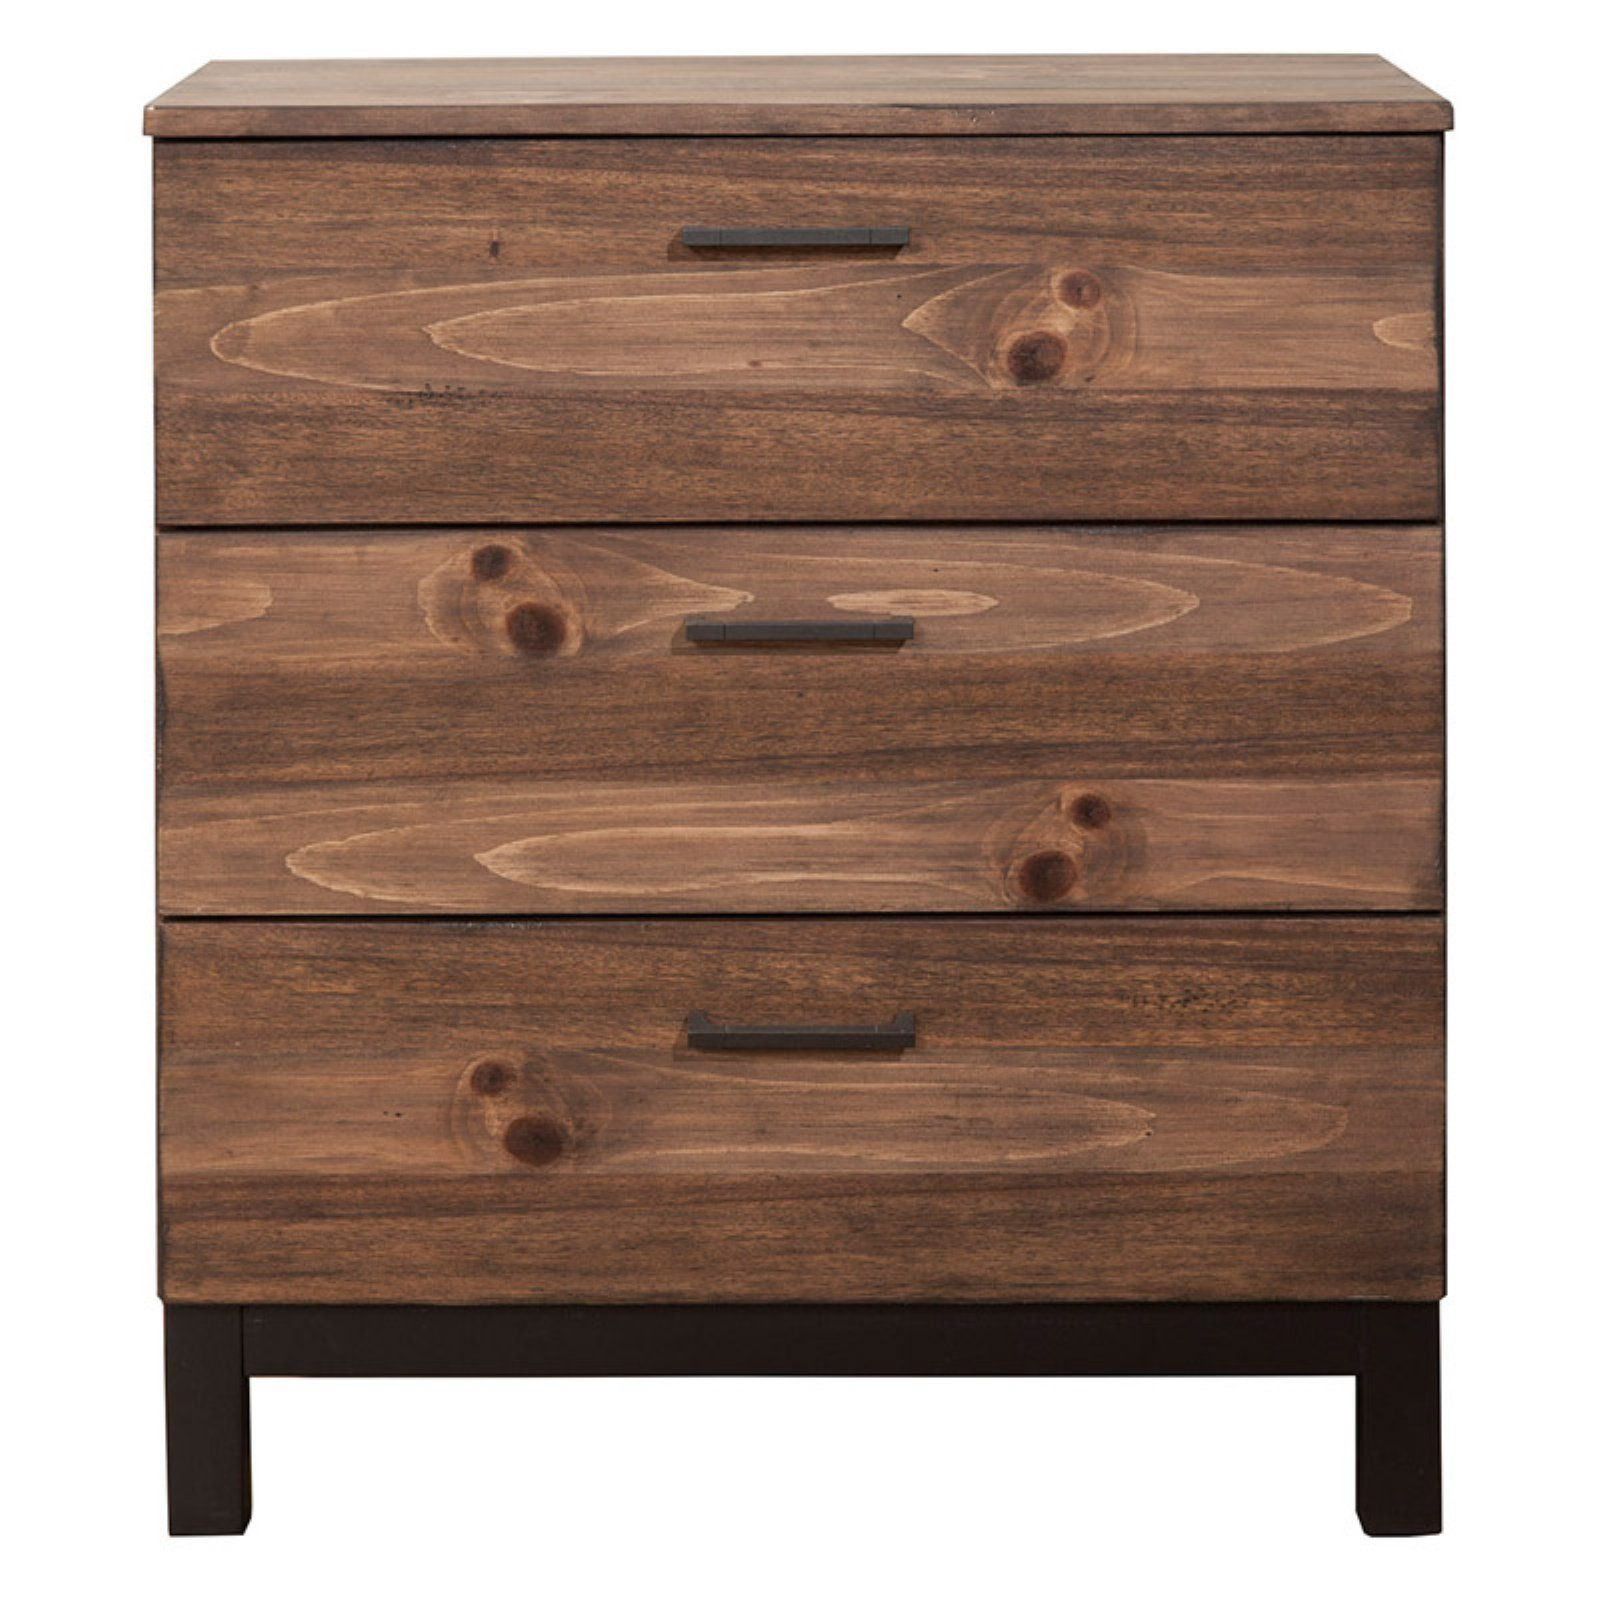 Origins by Alpine Weston Small 3 Drawer Bachelors Chest